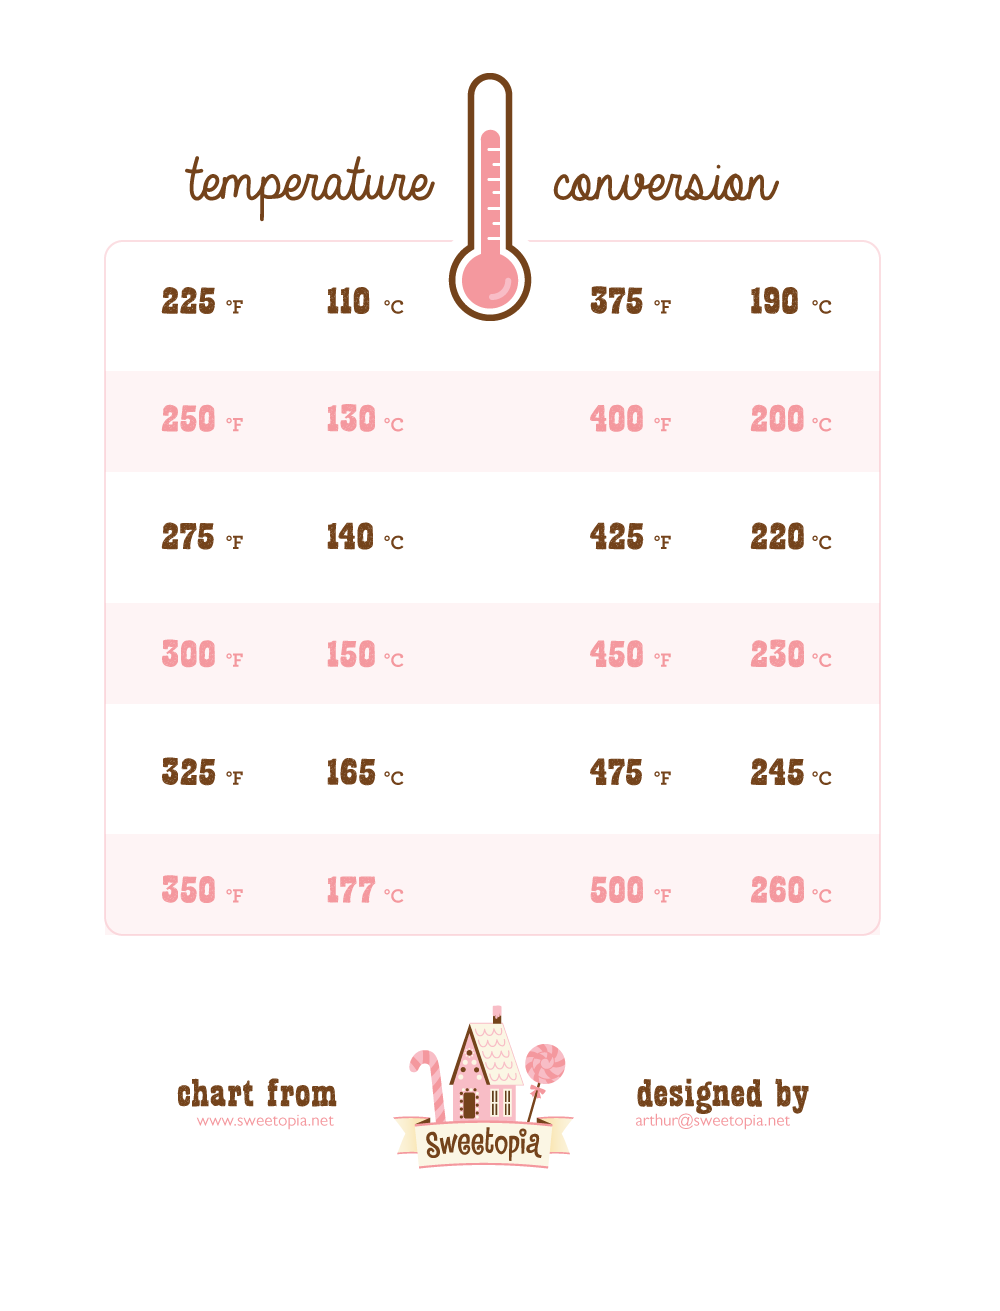 Oven temperatures conversion chart sweetopia temperature conversion chart nvjuhfo Image collections